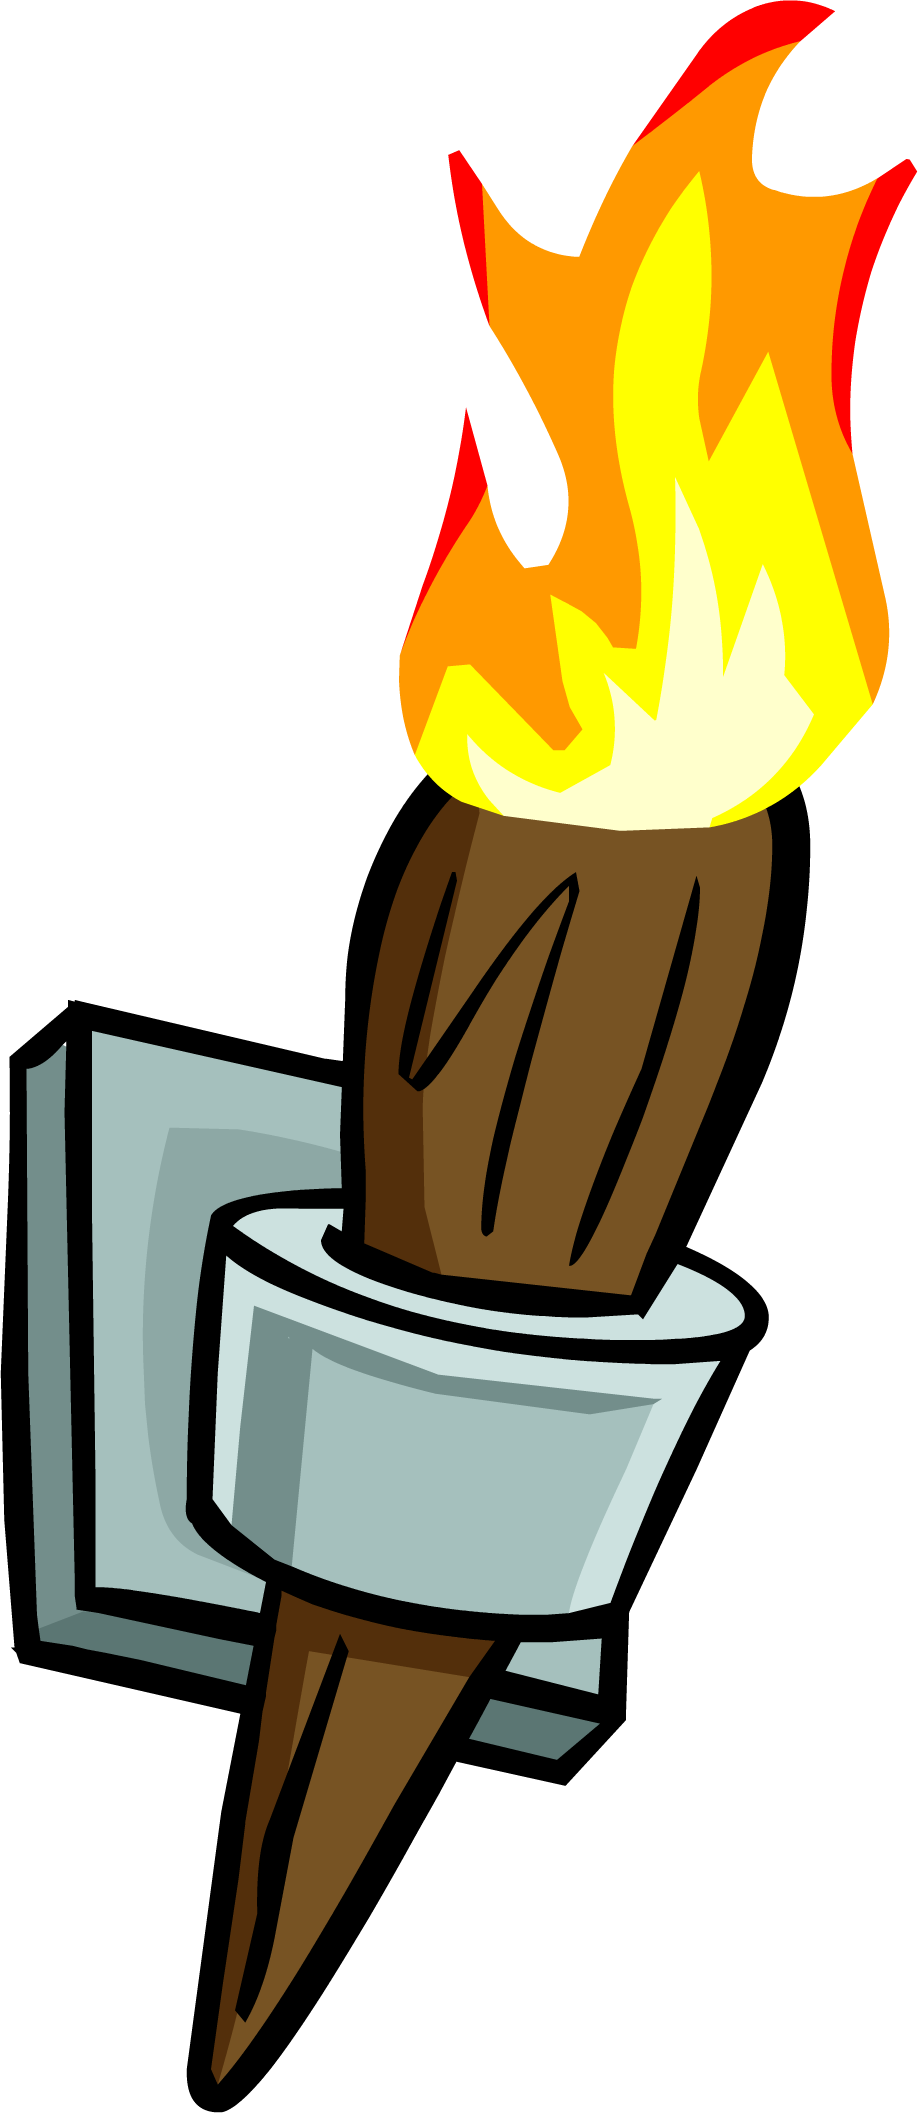 Club clipart torch. Image wall png penguin